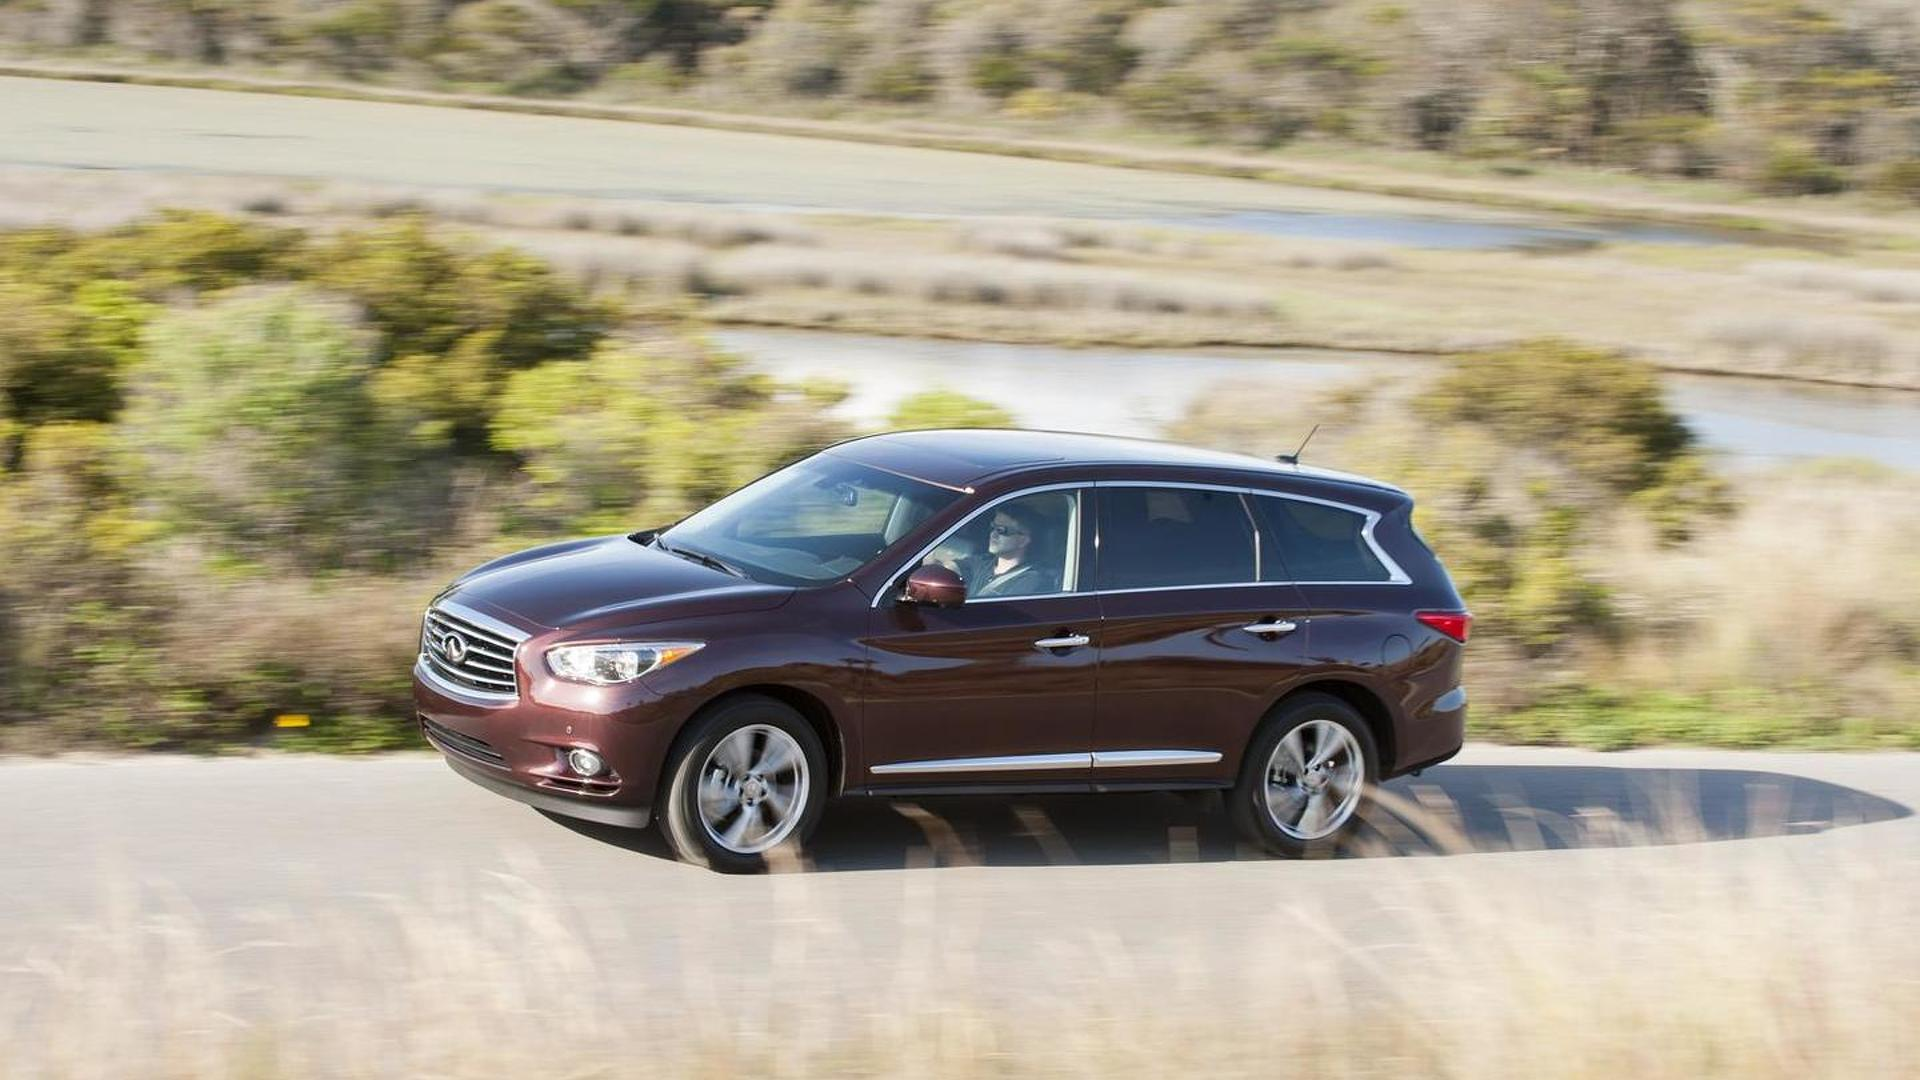 three motor infiniti front trend infinity en test quarters first suv news